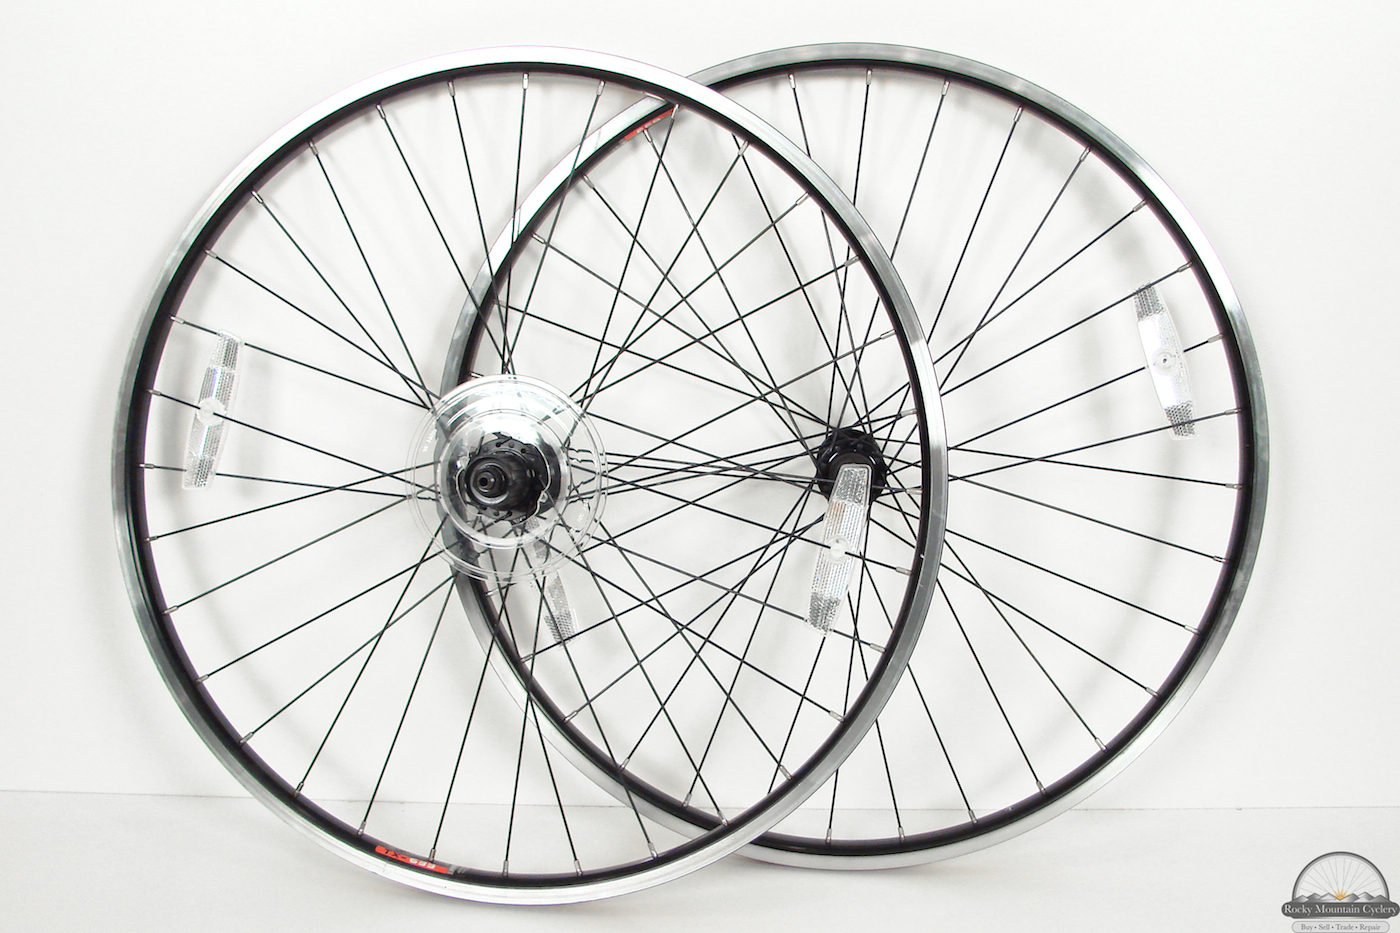 26 Inch Motorcycle Rims : Hole shimano inch mountain bike wheels